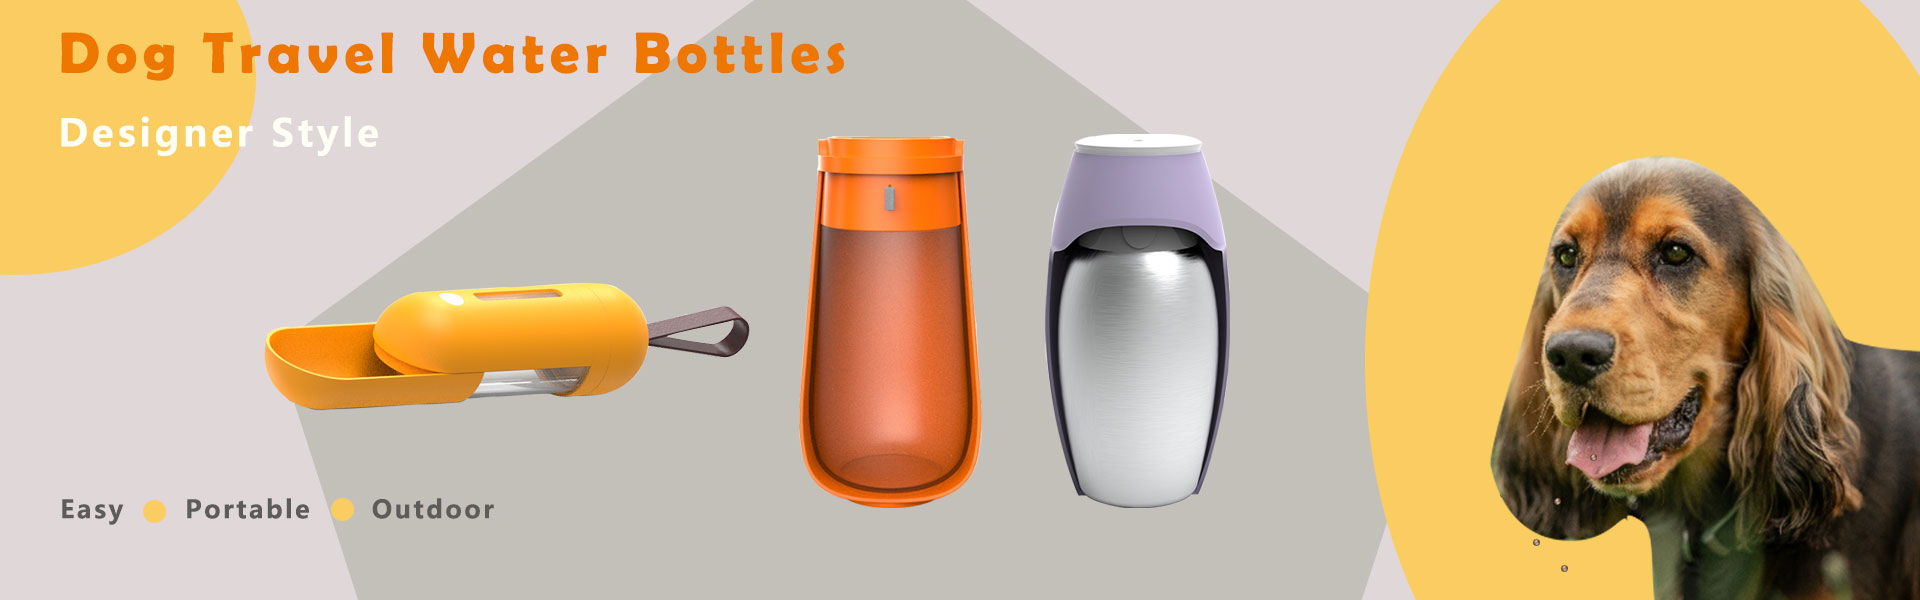 Dog travel water bottles